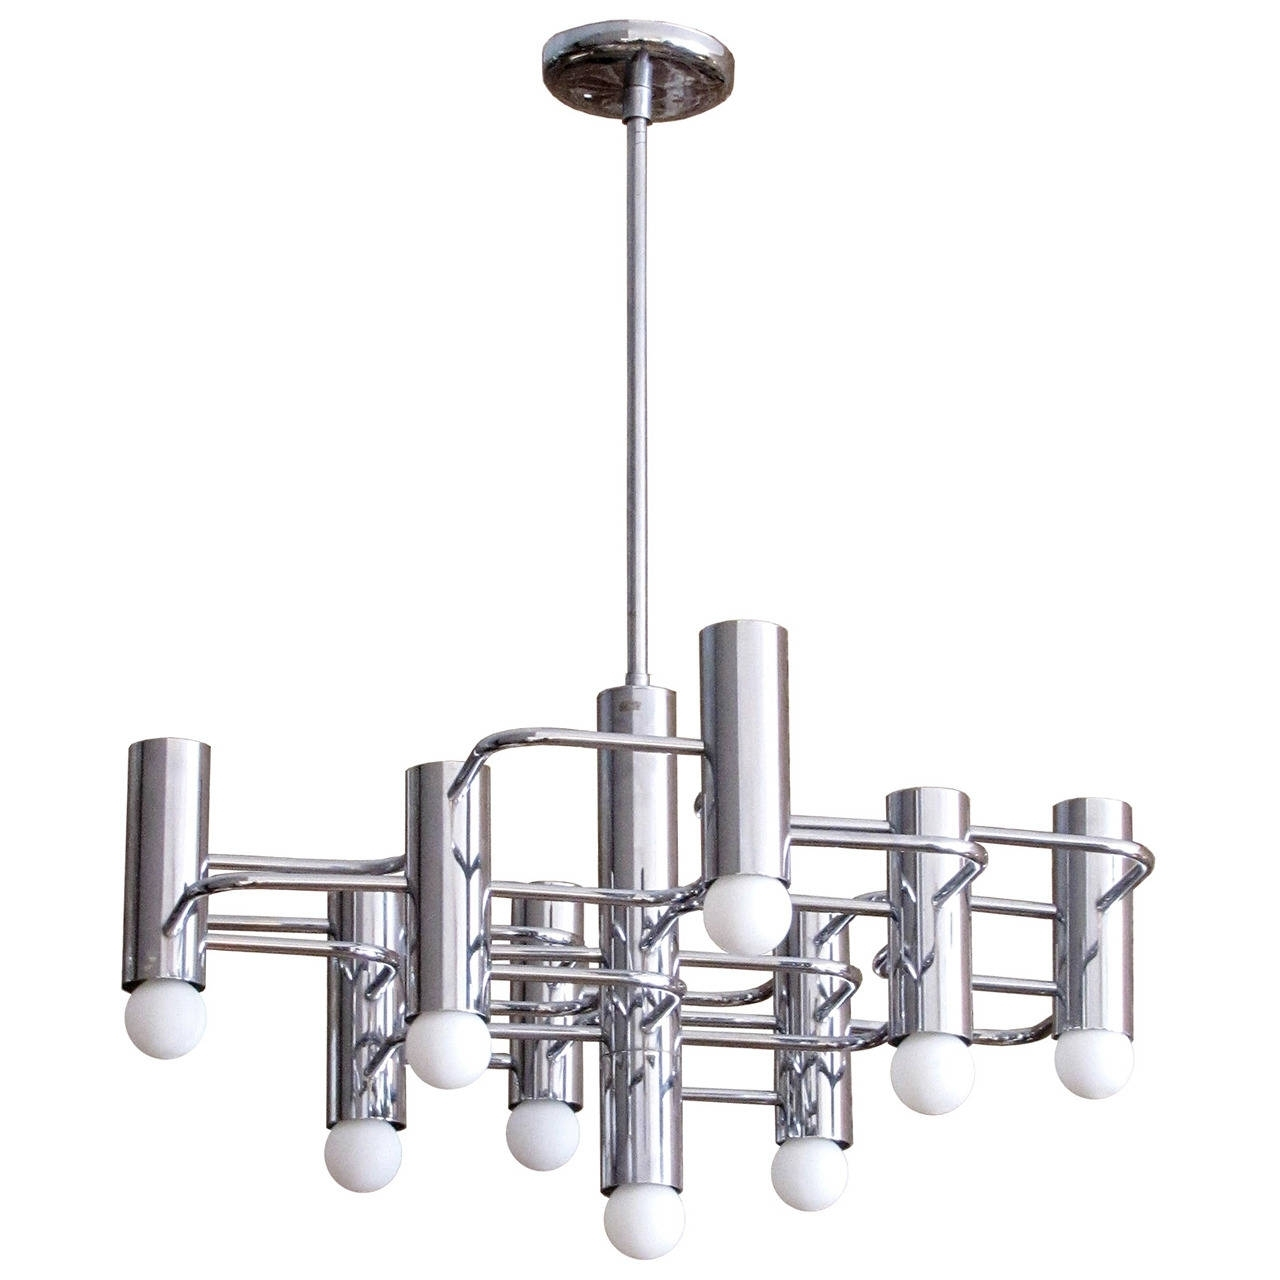 Best And Newest Boulanger Chrome Chandelier, 1960 For Sale At 1stdibs Within Chrome Chandeliers (View 7 of 20)